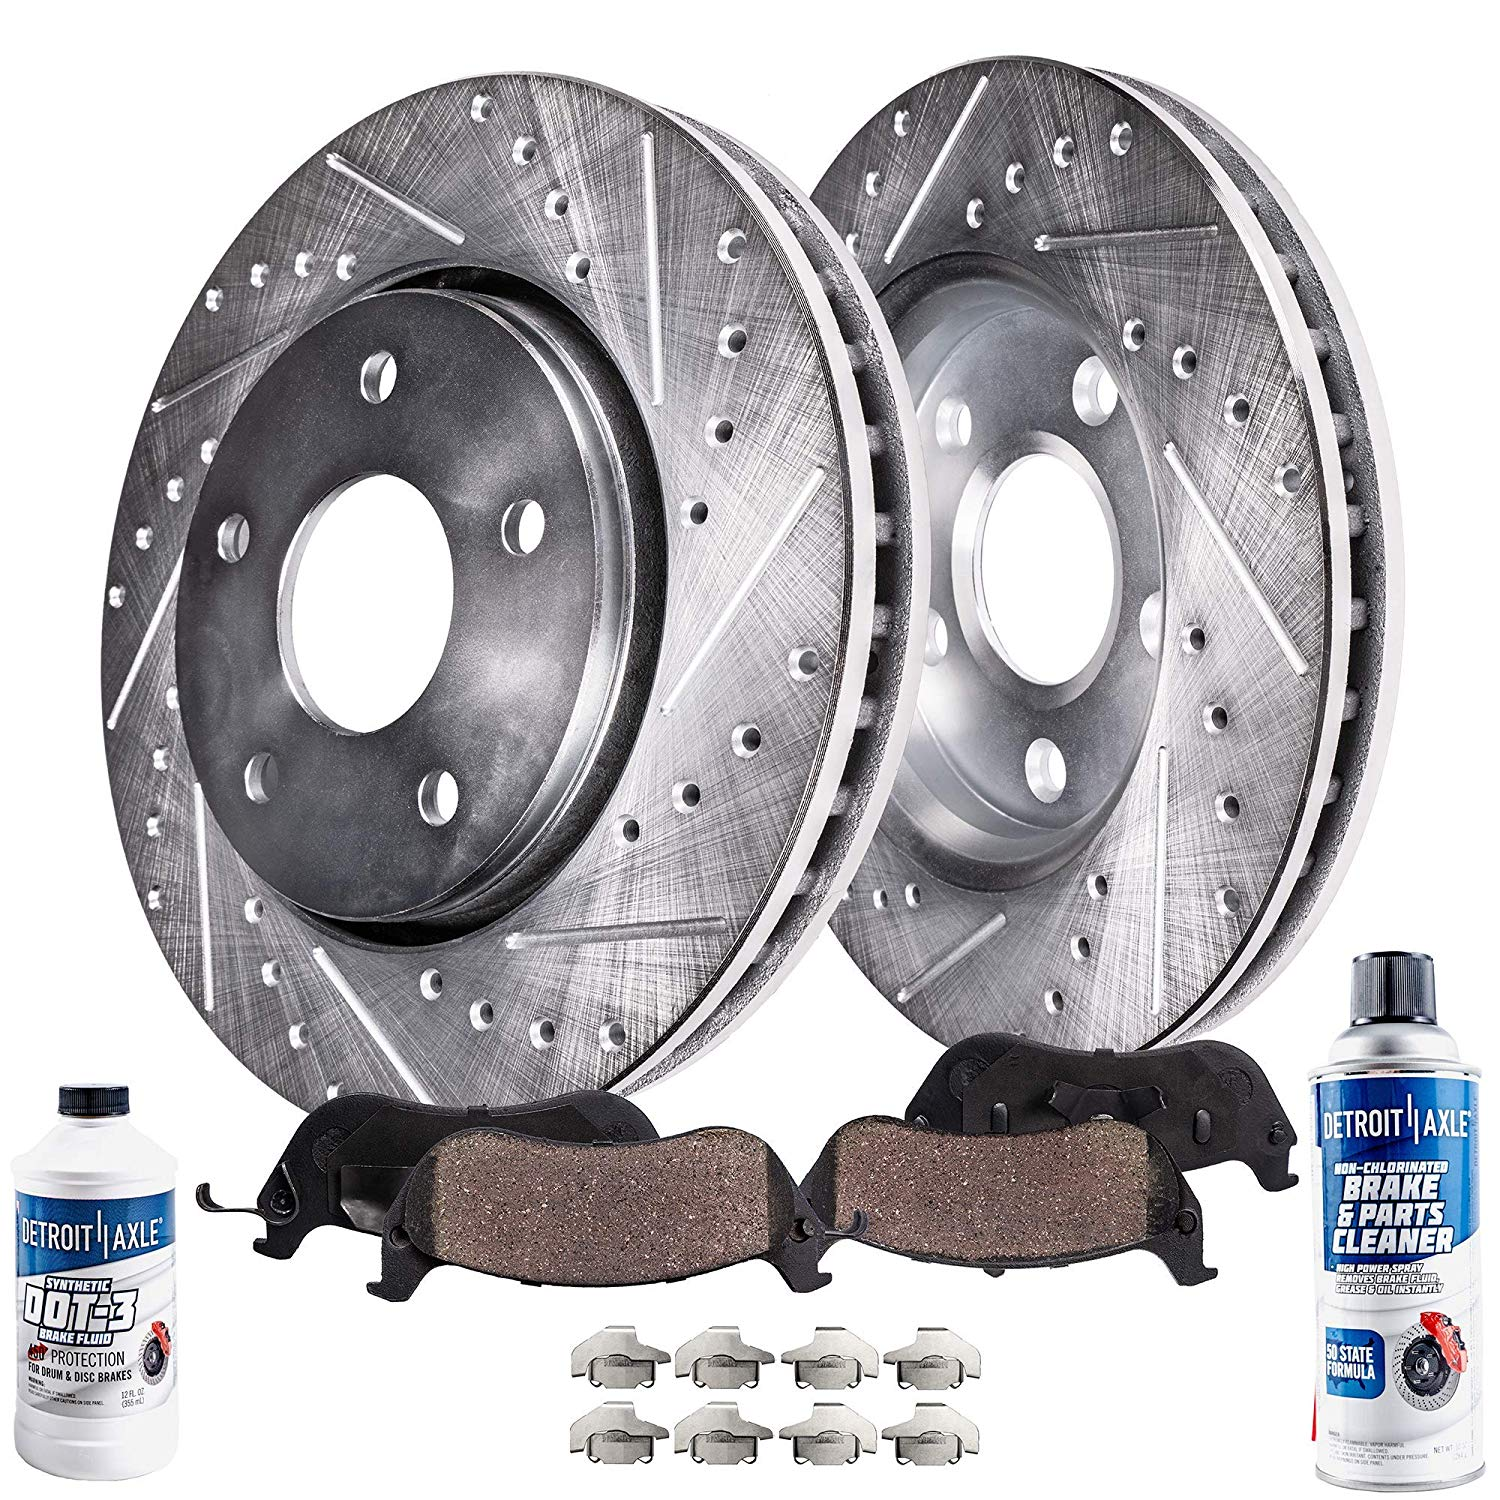 Brakes Rotors and Brake Pads Kit - EASY FITMENT INFORMATION